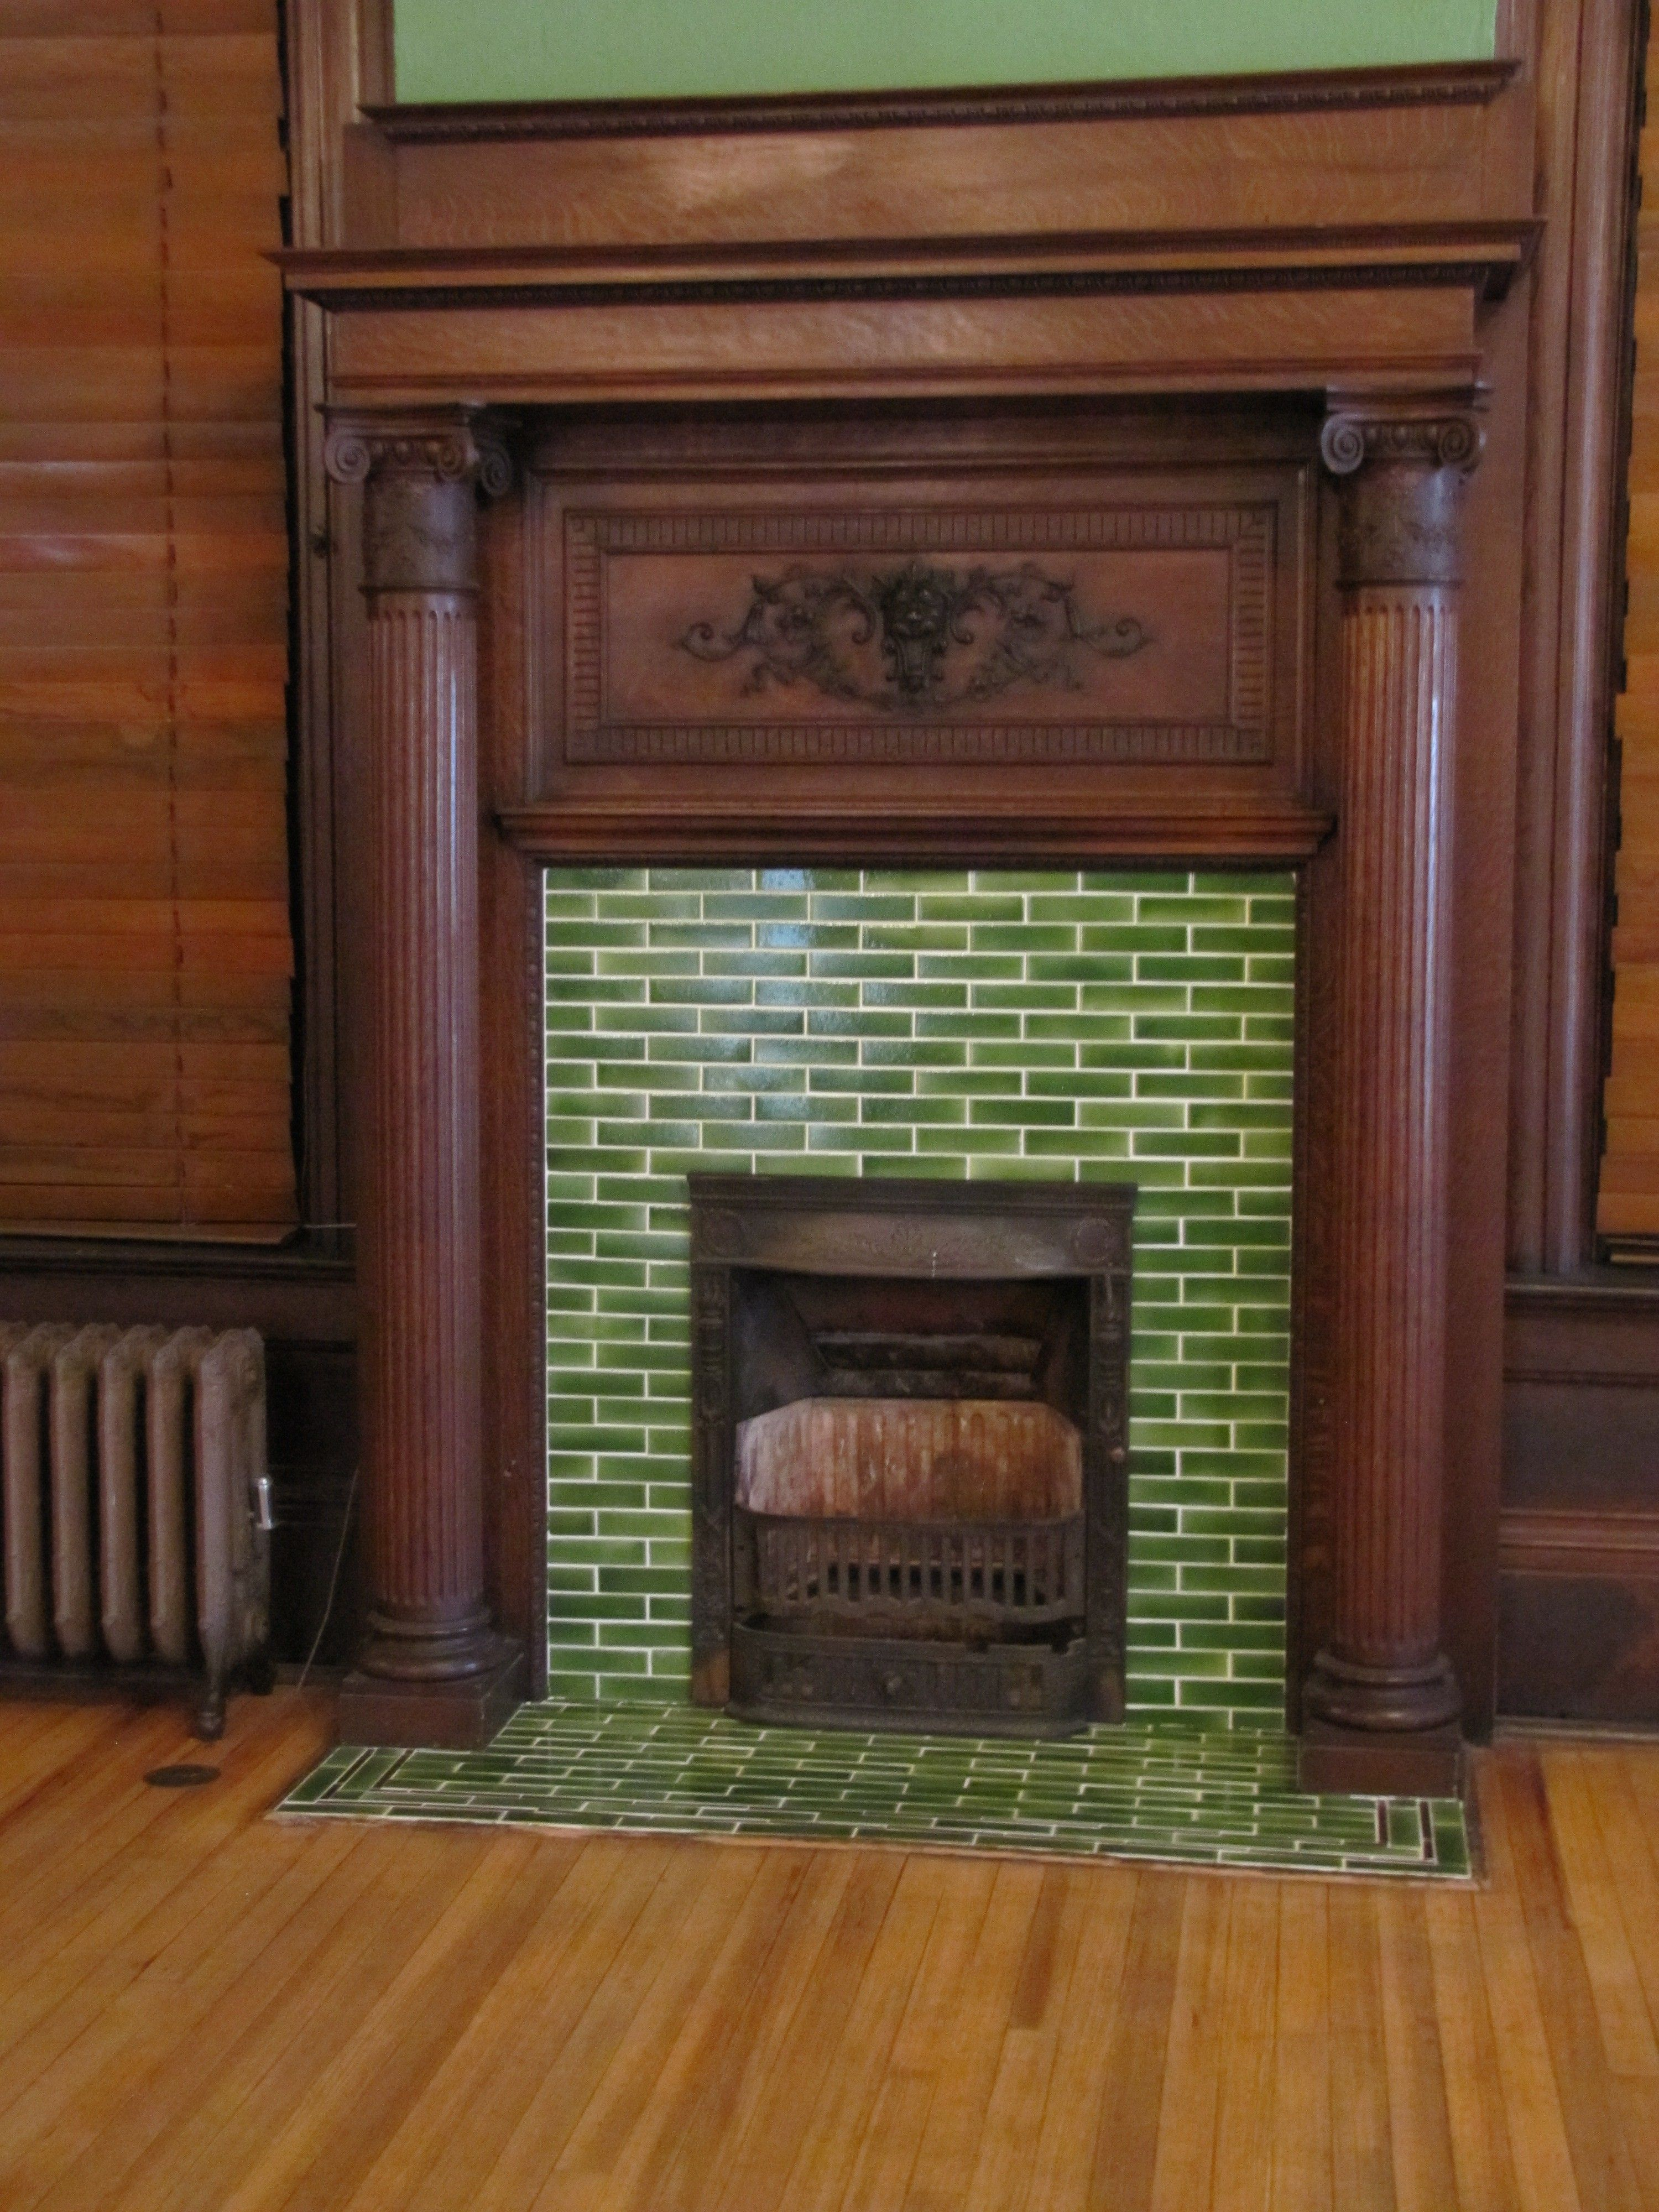 fireplace charles fireplaces size architectural original tiles full graham antique and view antiques product